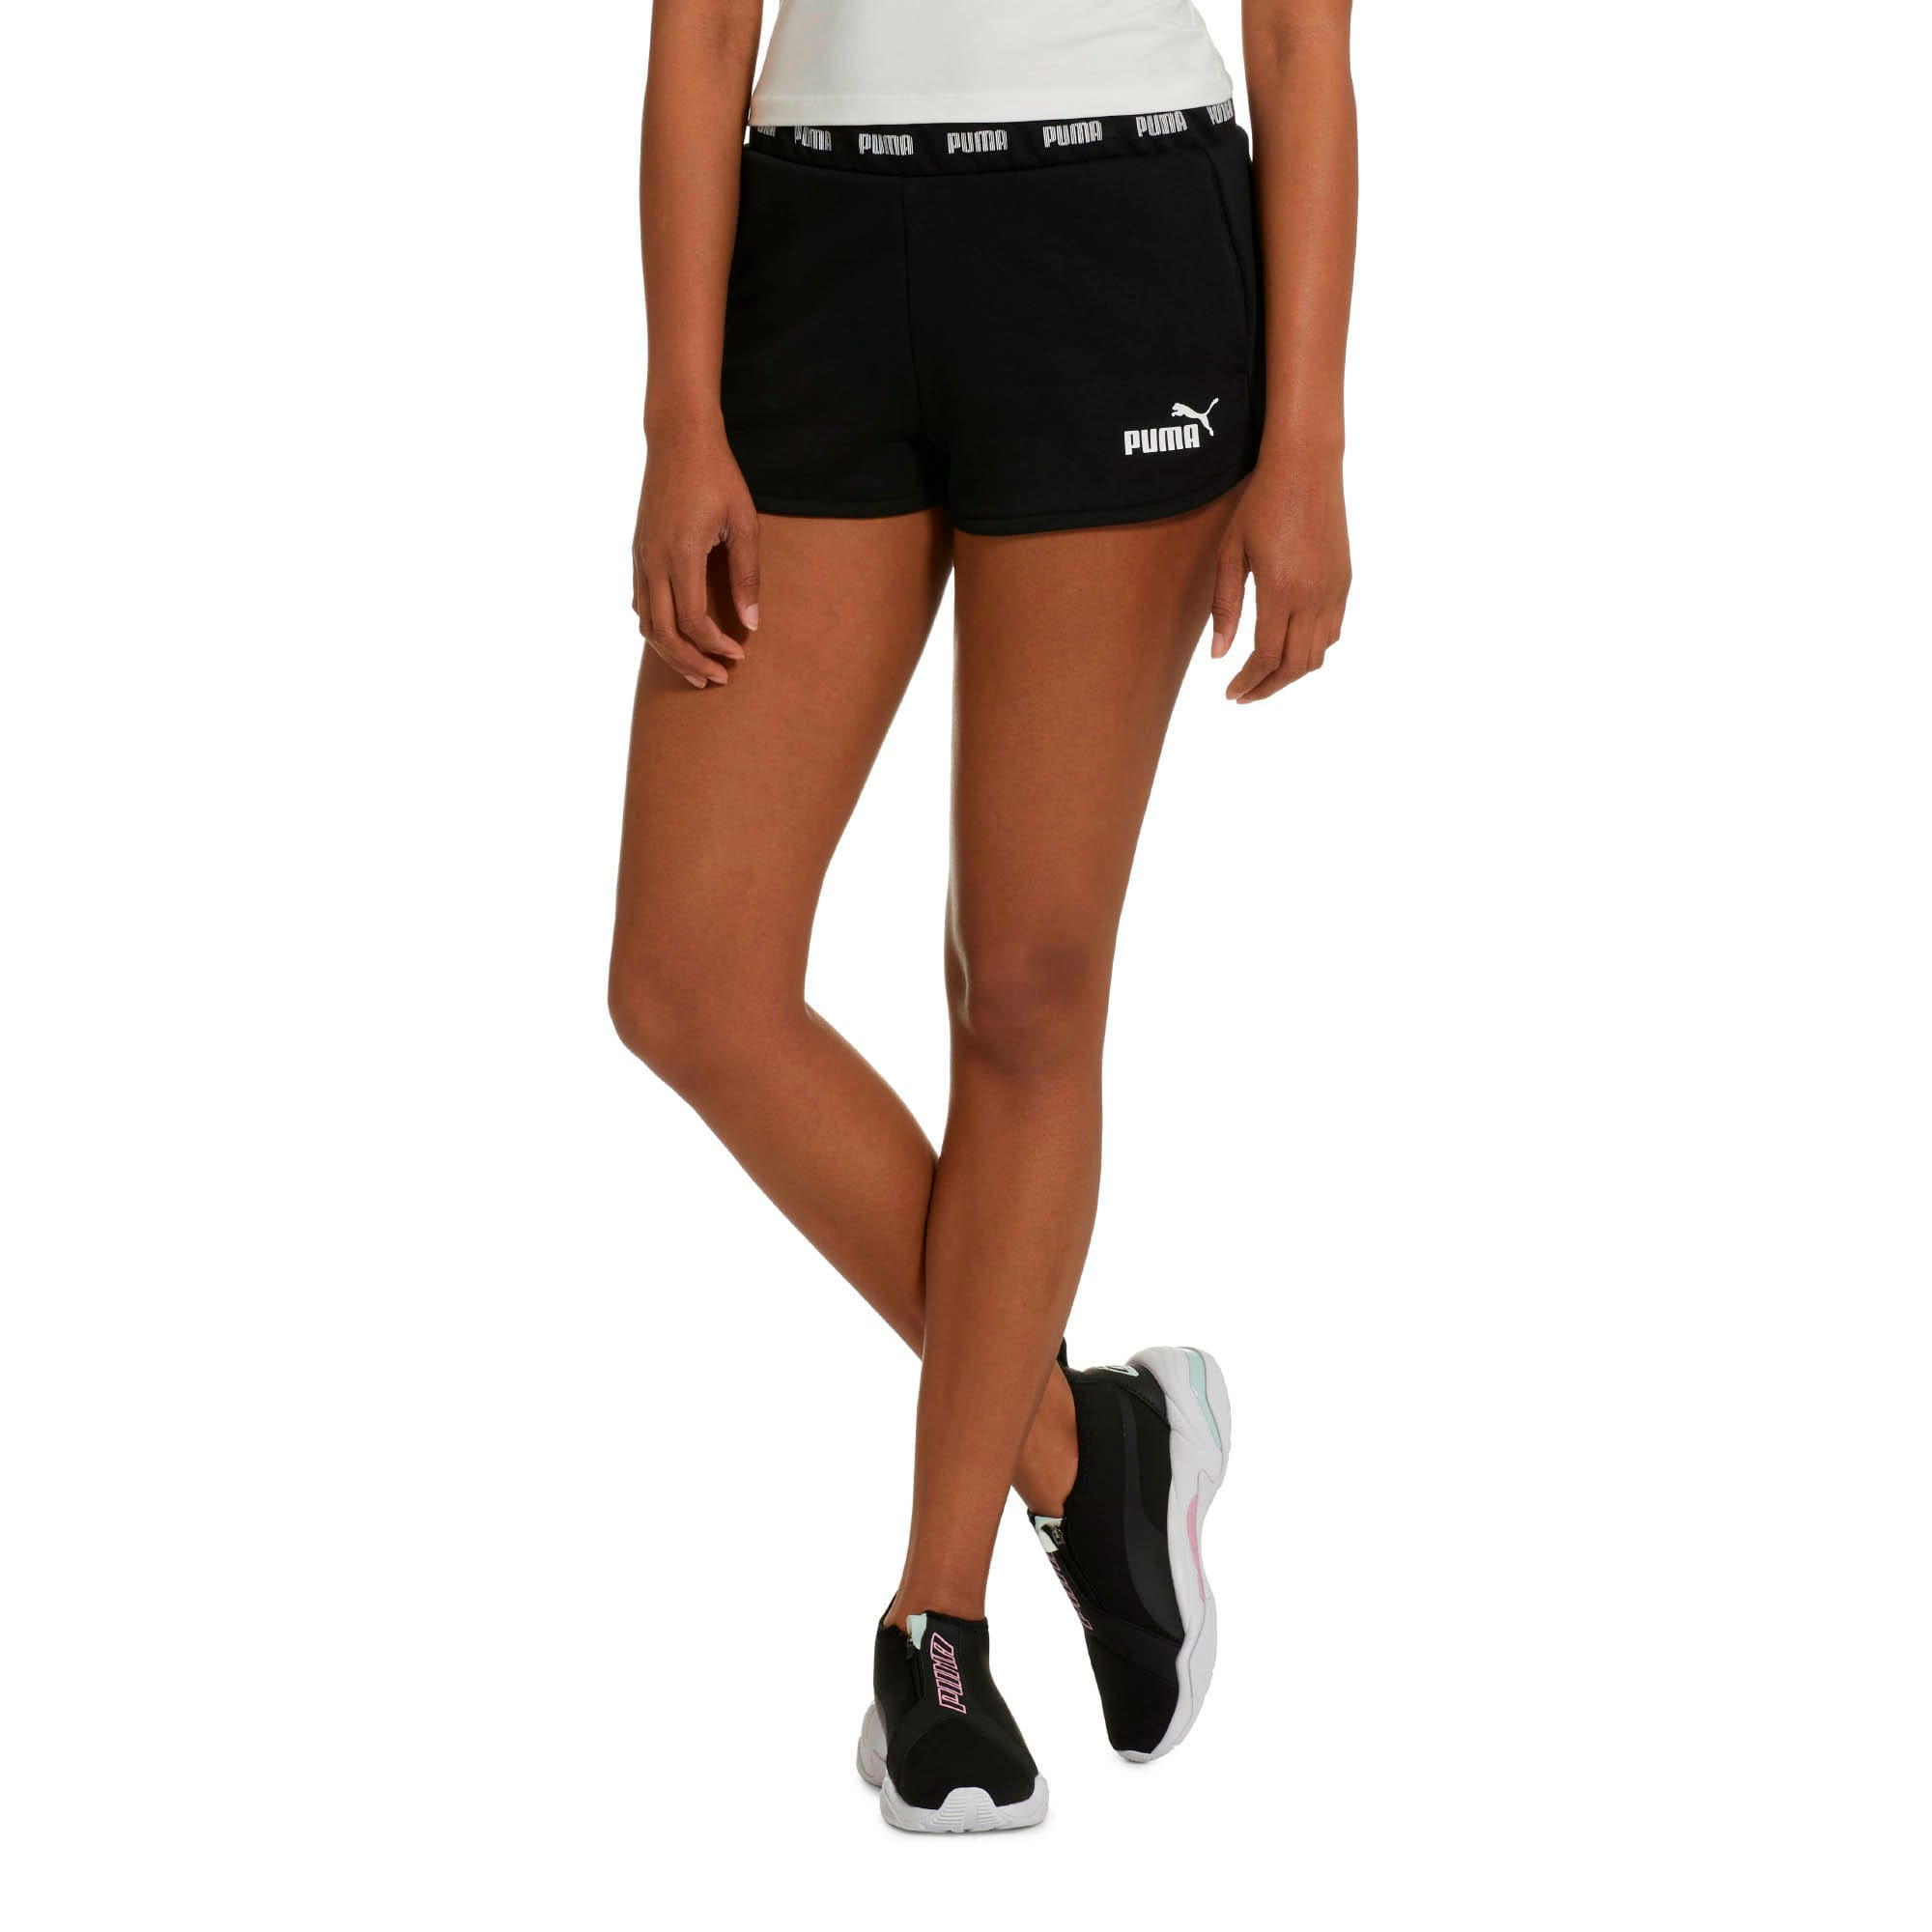 Thumbnail 2 of Amplified Women's Shorts, Cotton Black, medium